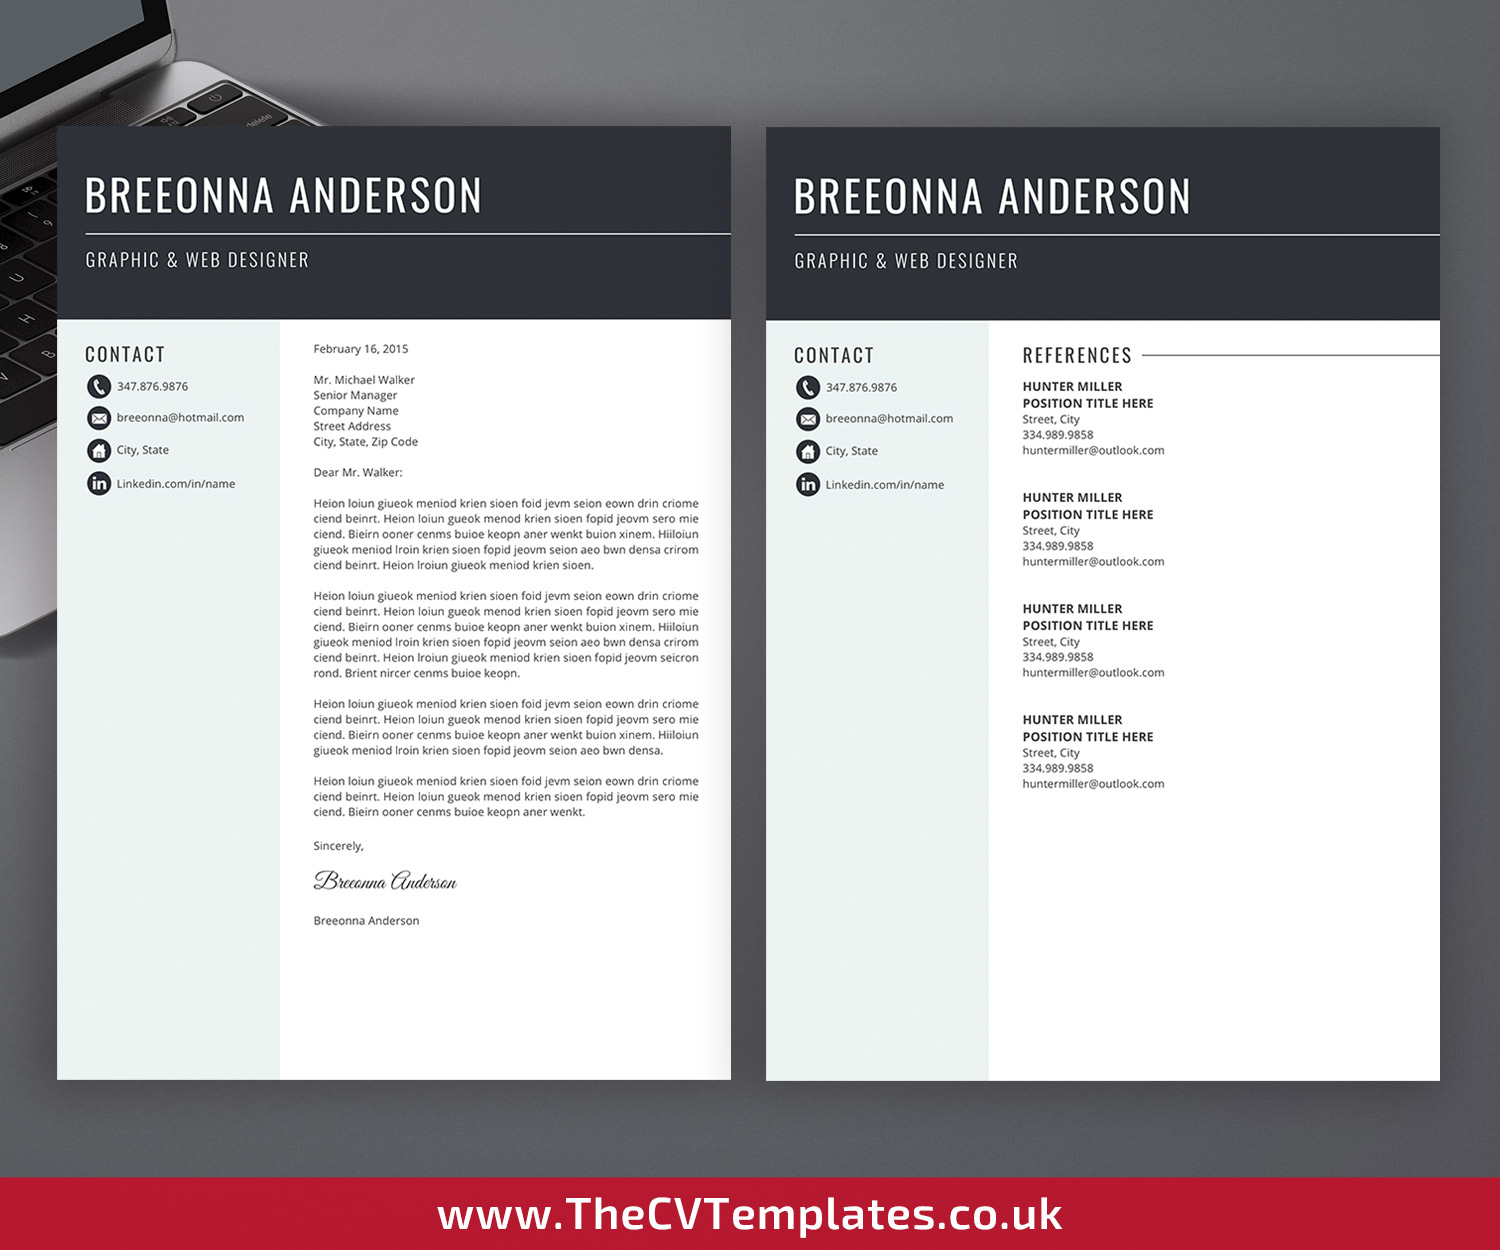 Home decorating style 2021 for avery labels template 5366 download, you can see avery labels template 5366 download and more pictures for home interior designing 2021 218064 at resume example ideas. Modern Cv Template For Word Cover Letter Walker Instant Download Mac Pc Professional Resume Template 1 And 2 Pages Resume Design Templates Stationery Itreen Com